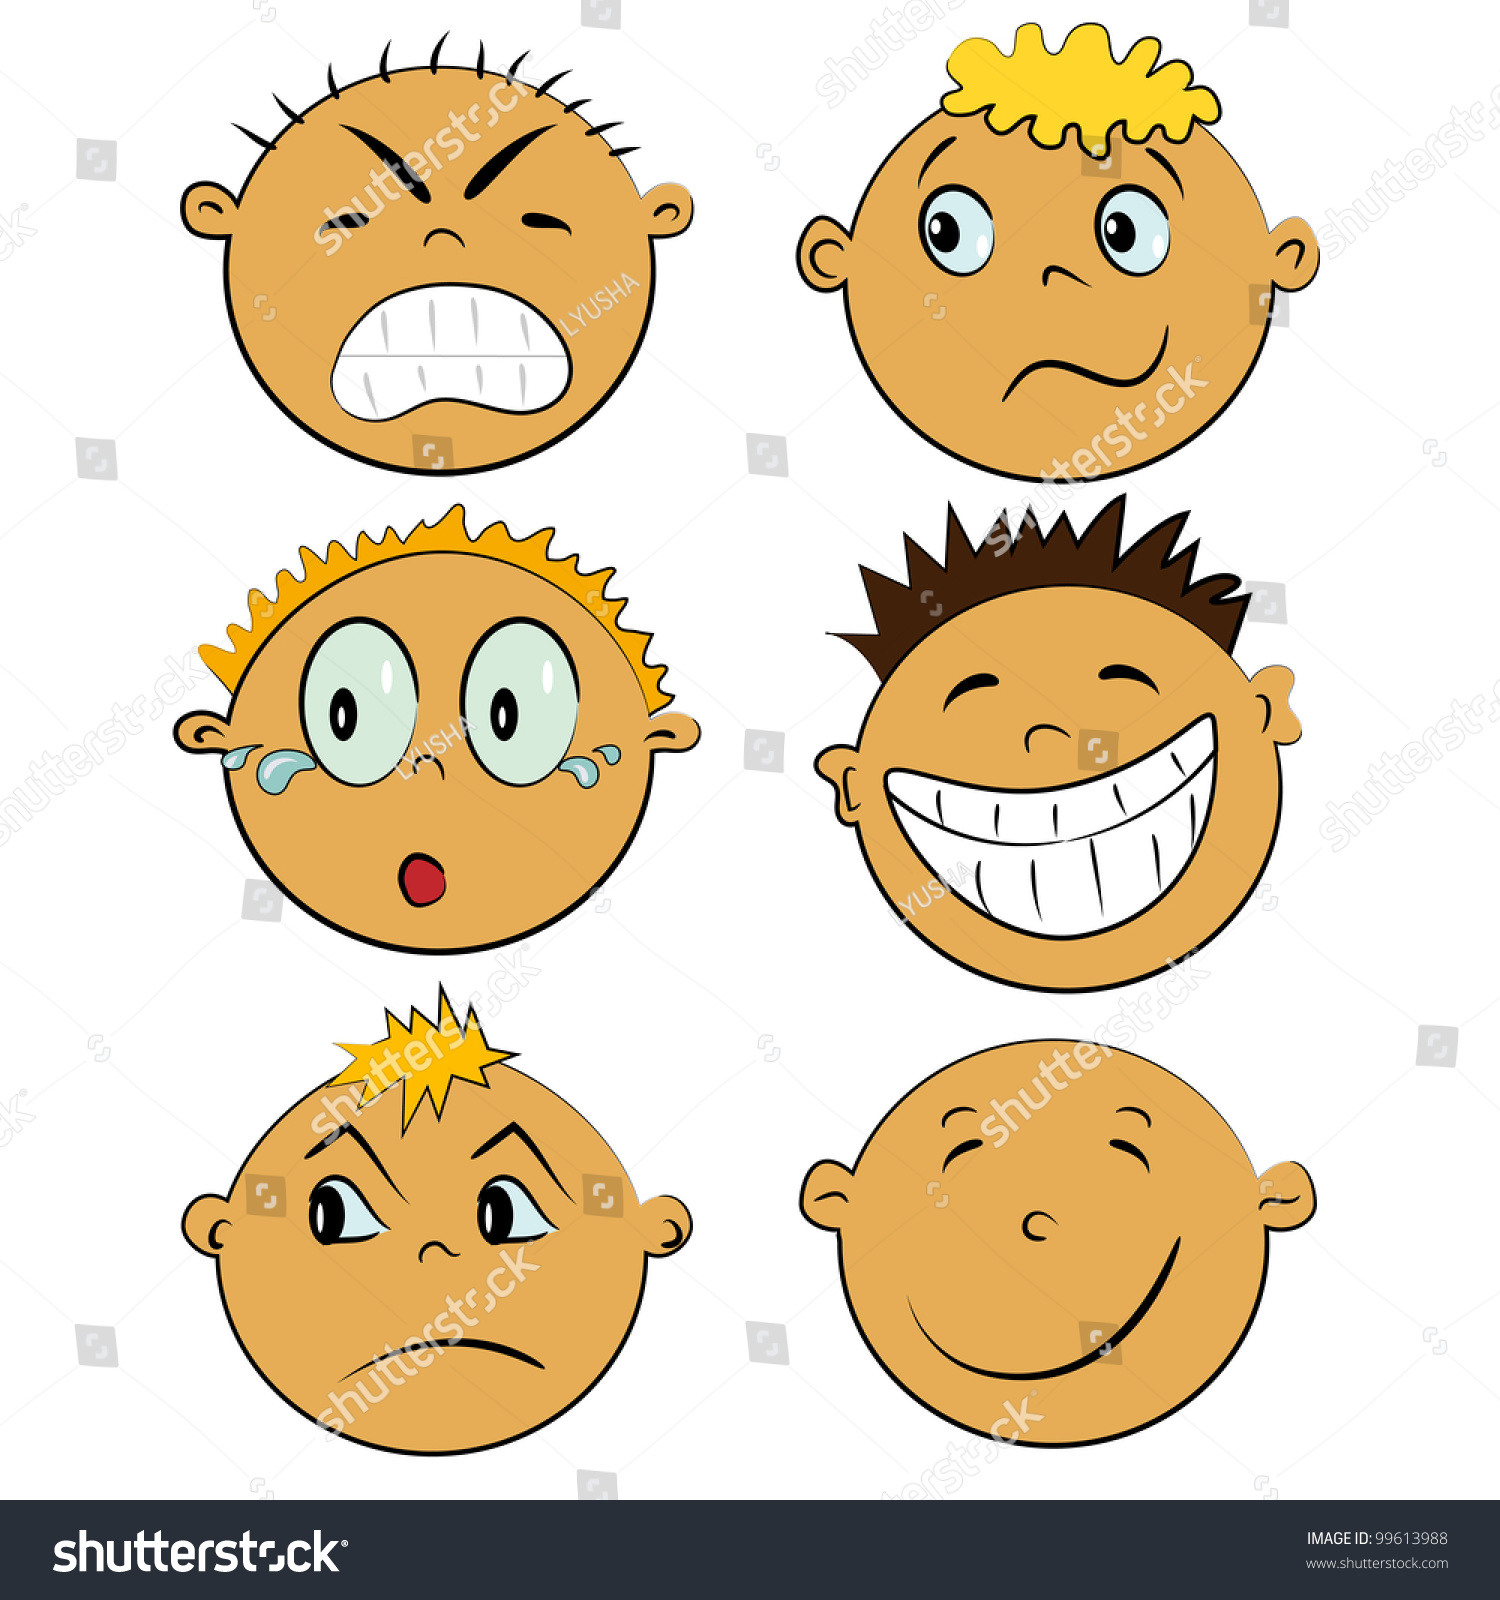 Emotion Faces Set Cartoon Children Emotions Stock Vector